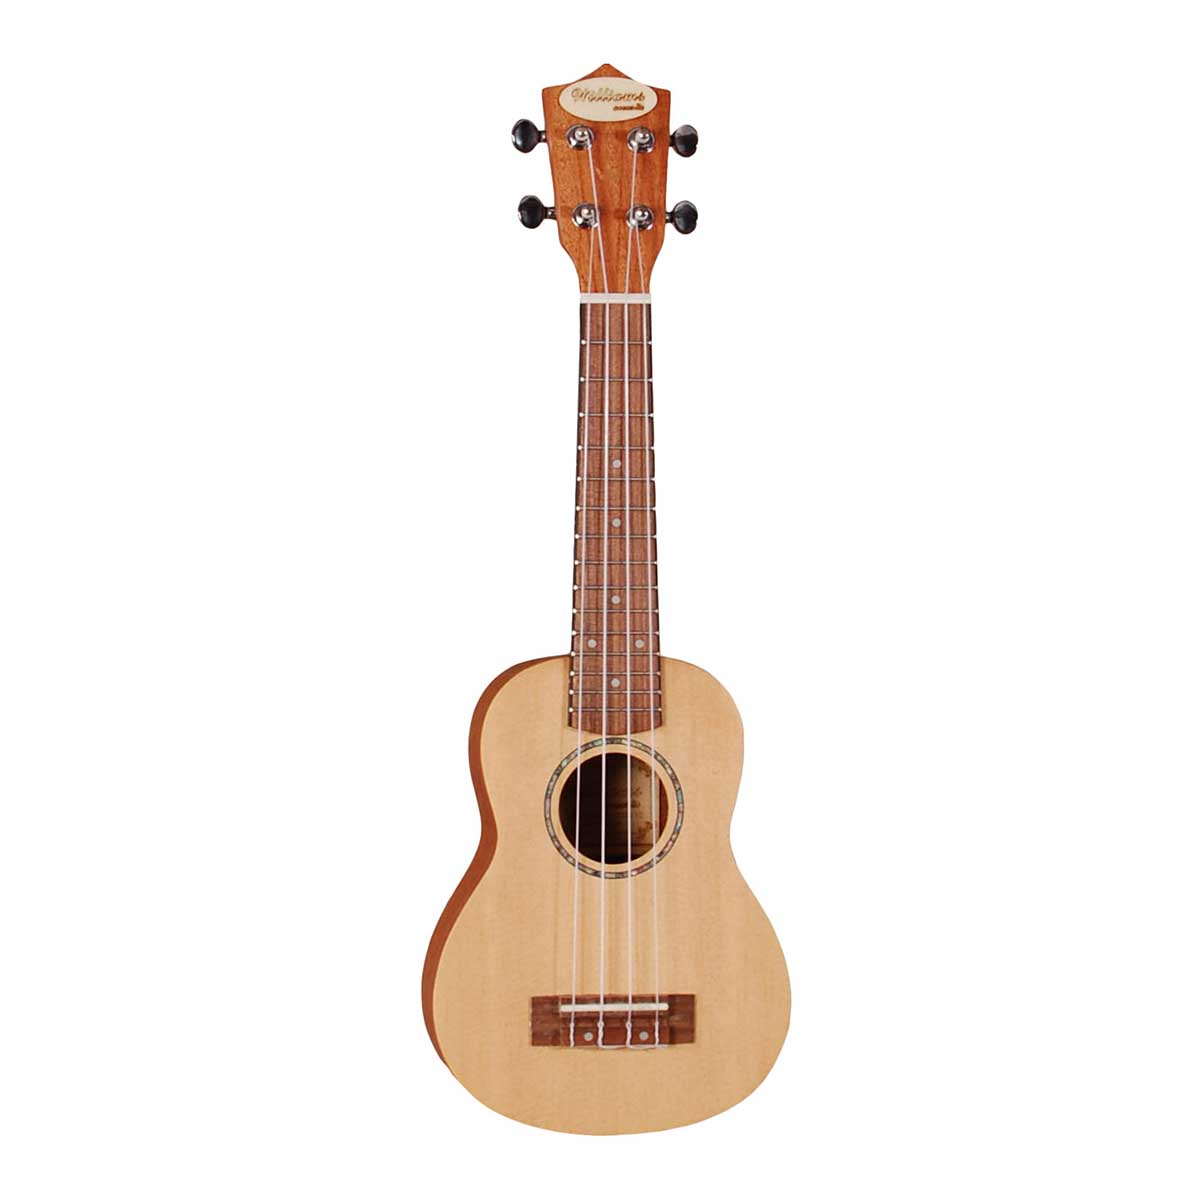 Williams Acoustic EU200S v2 sopran ukulele